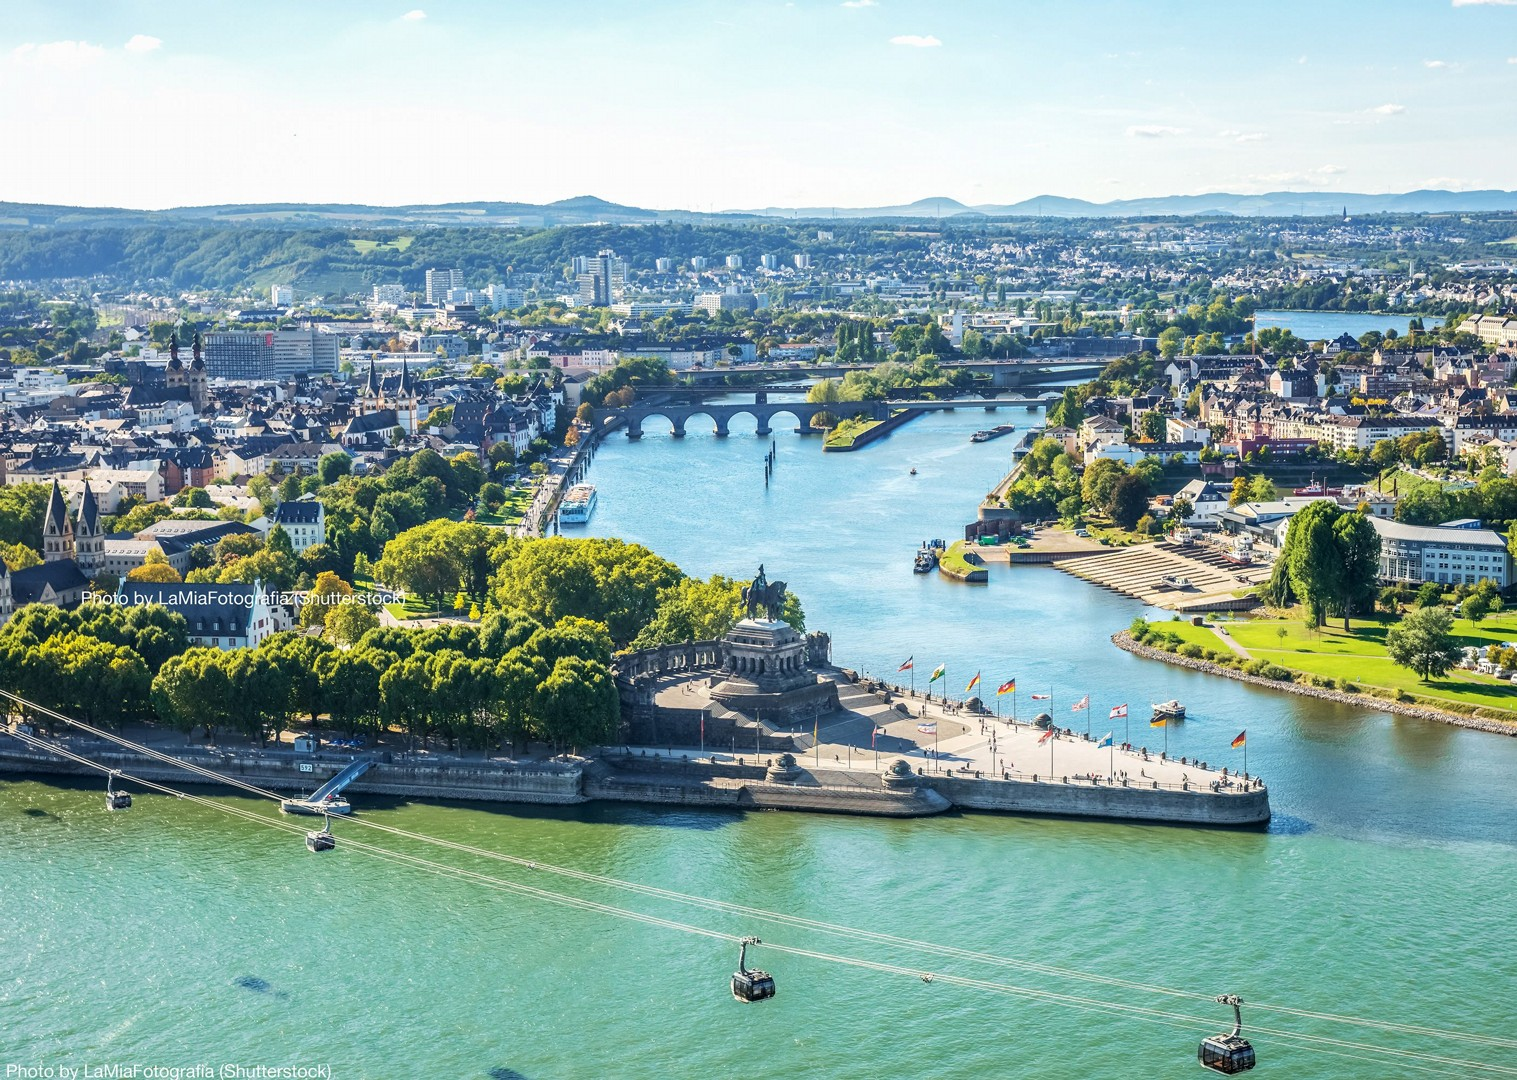 koblenz-cycling-holiday-leisure-cycling-holiday.jpg - Germany - Moselle Valley - Self-Guided Leisure Cycling Holiday - Leisure Cycling